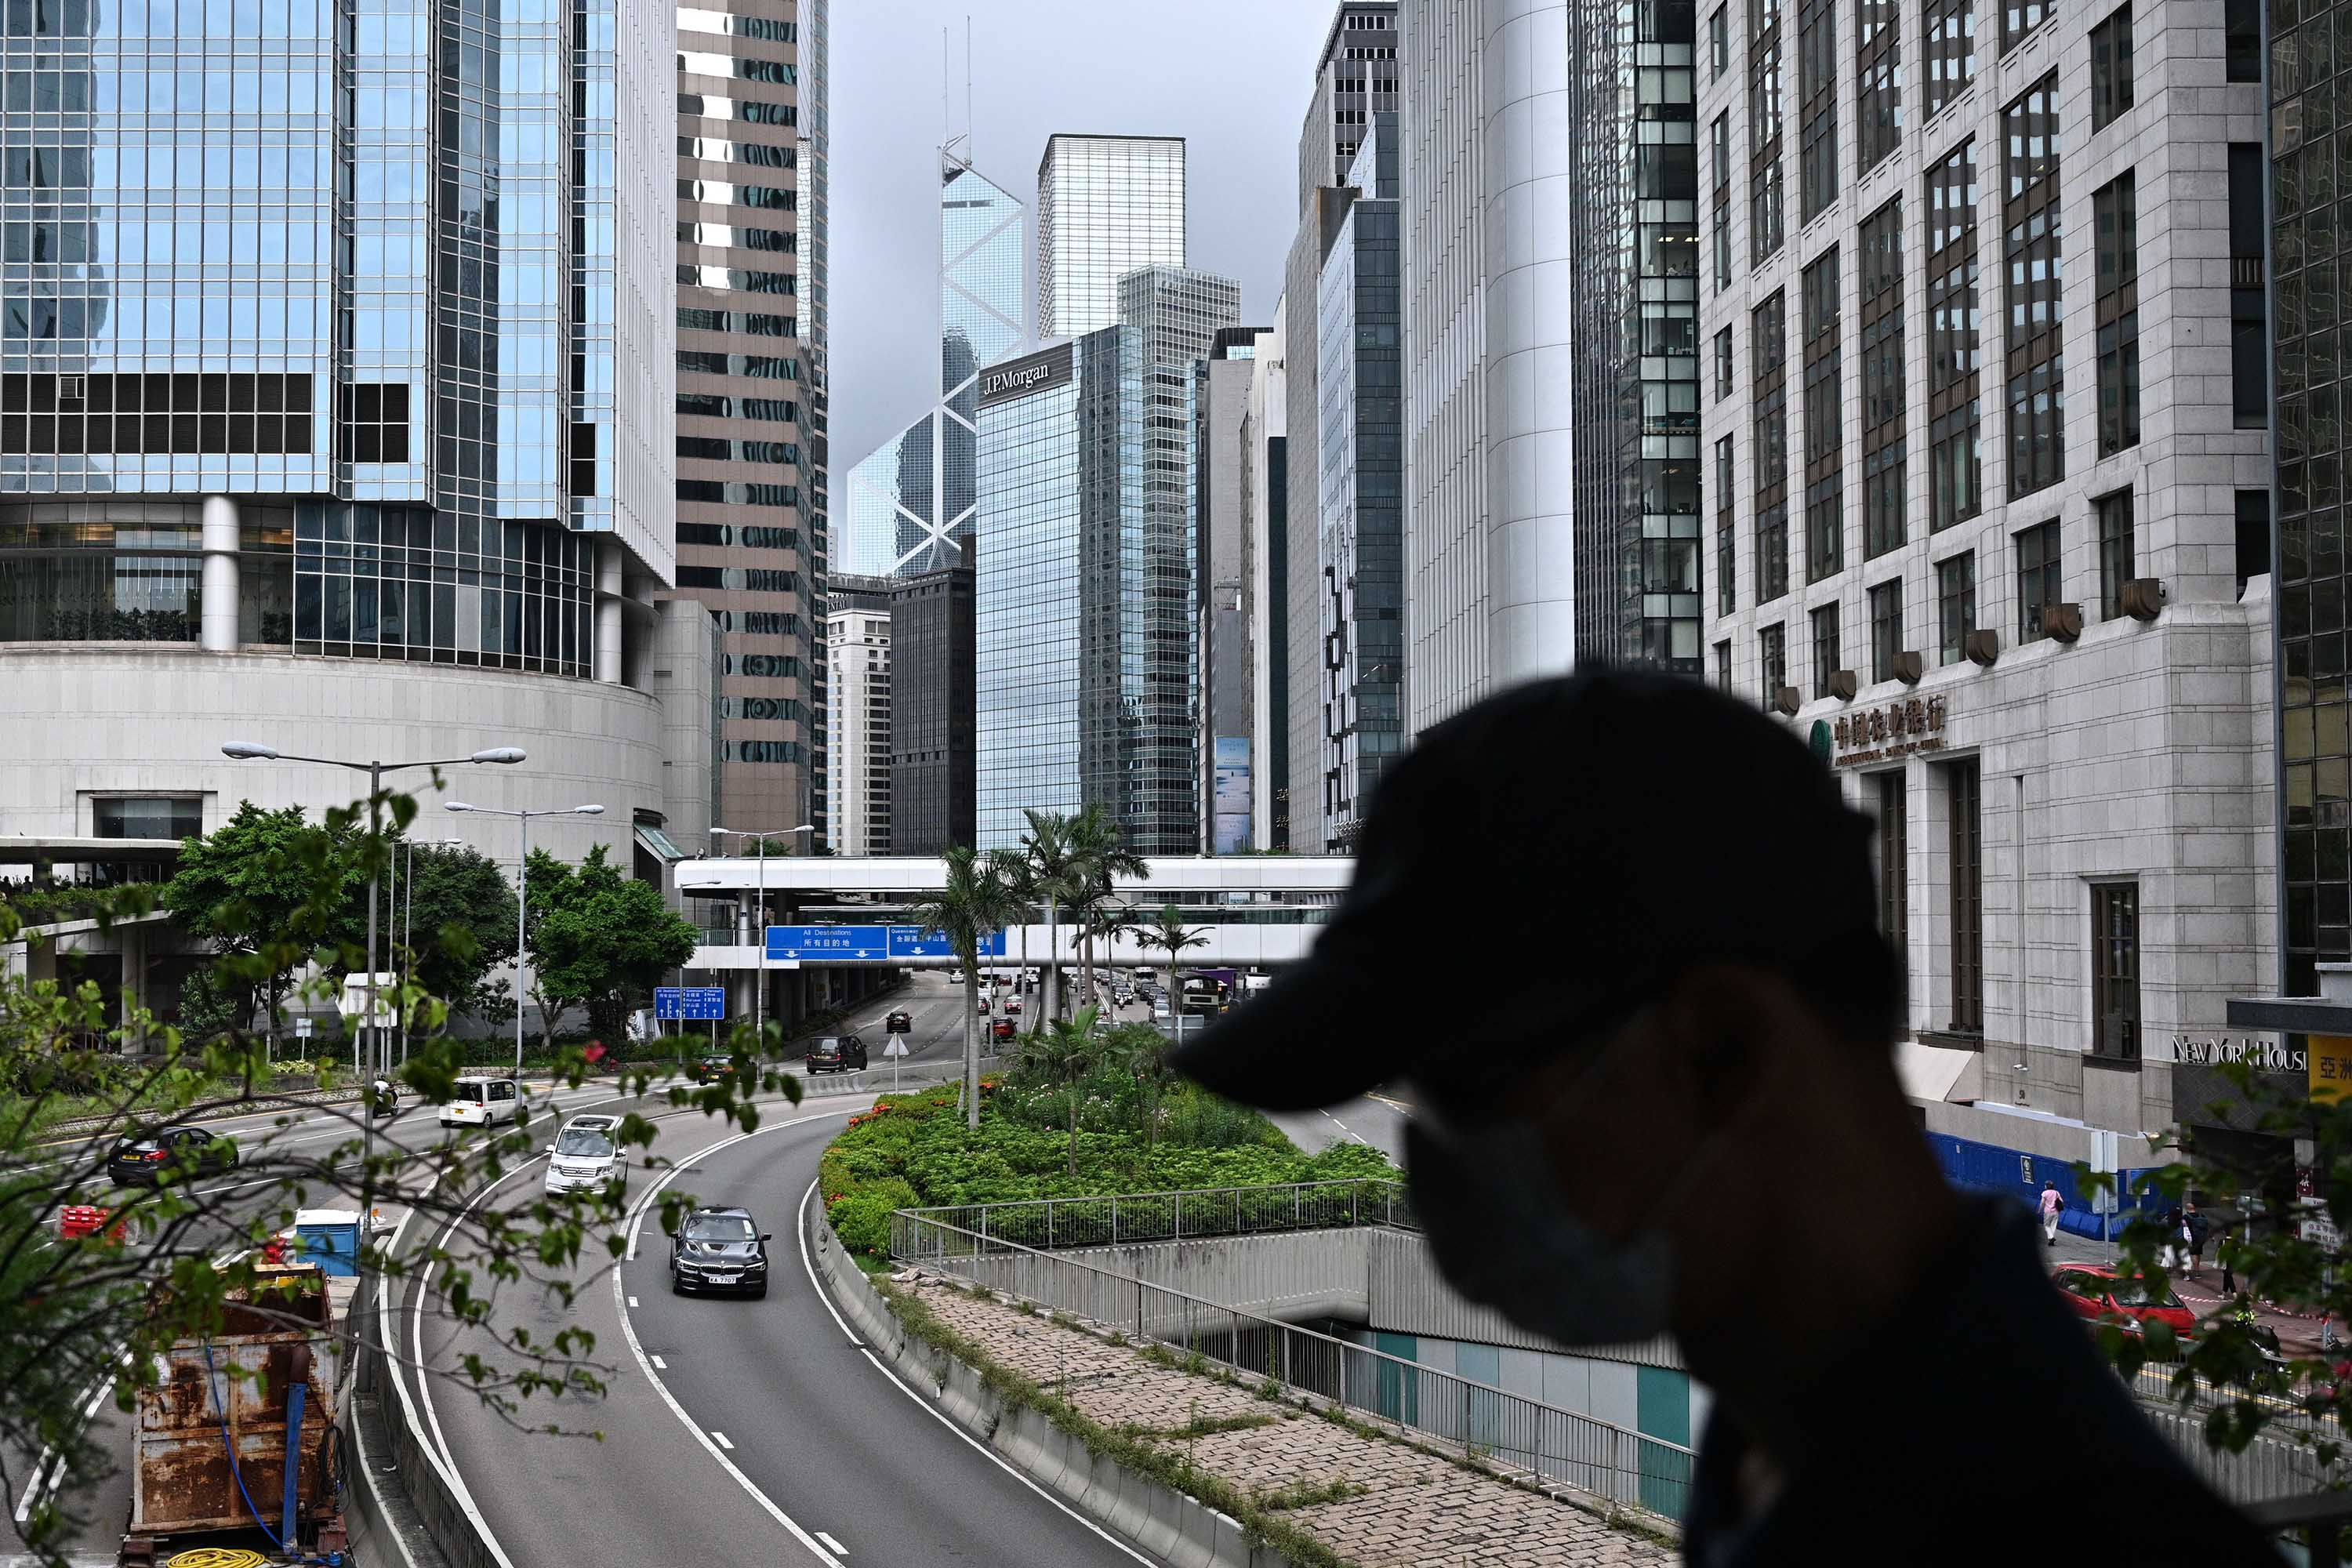 A pedestrian wearing a face mask walks in Hong Kong's Central district on July 9.